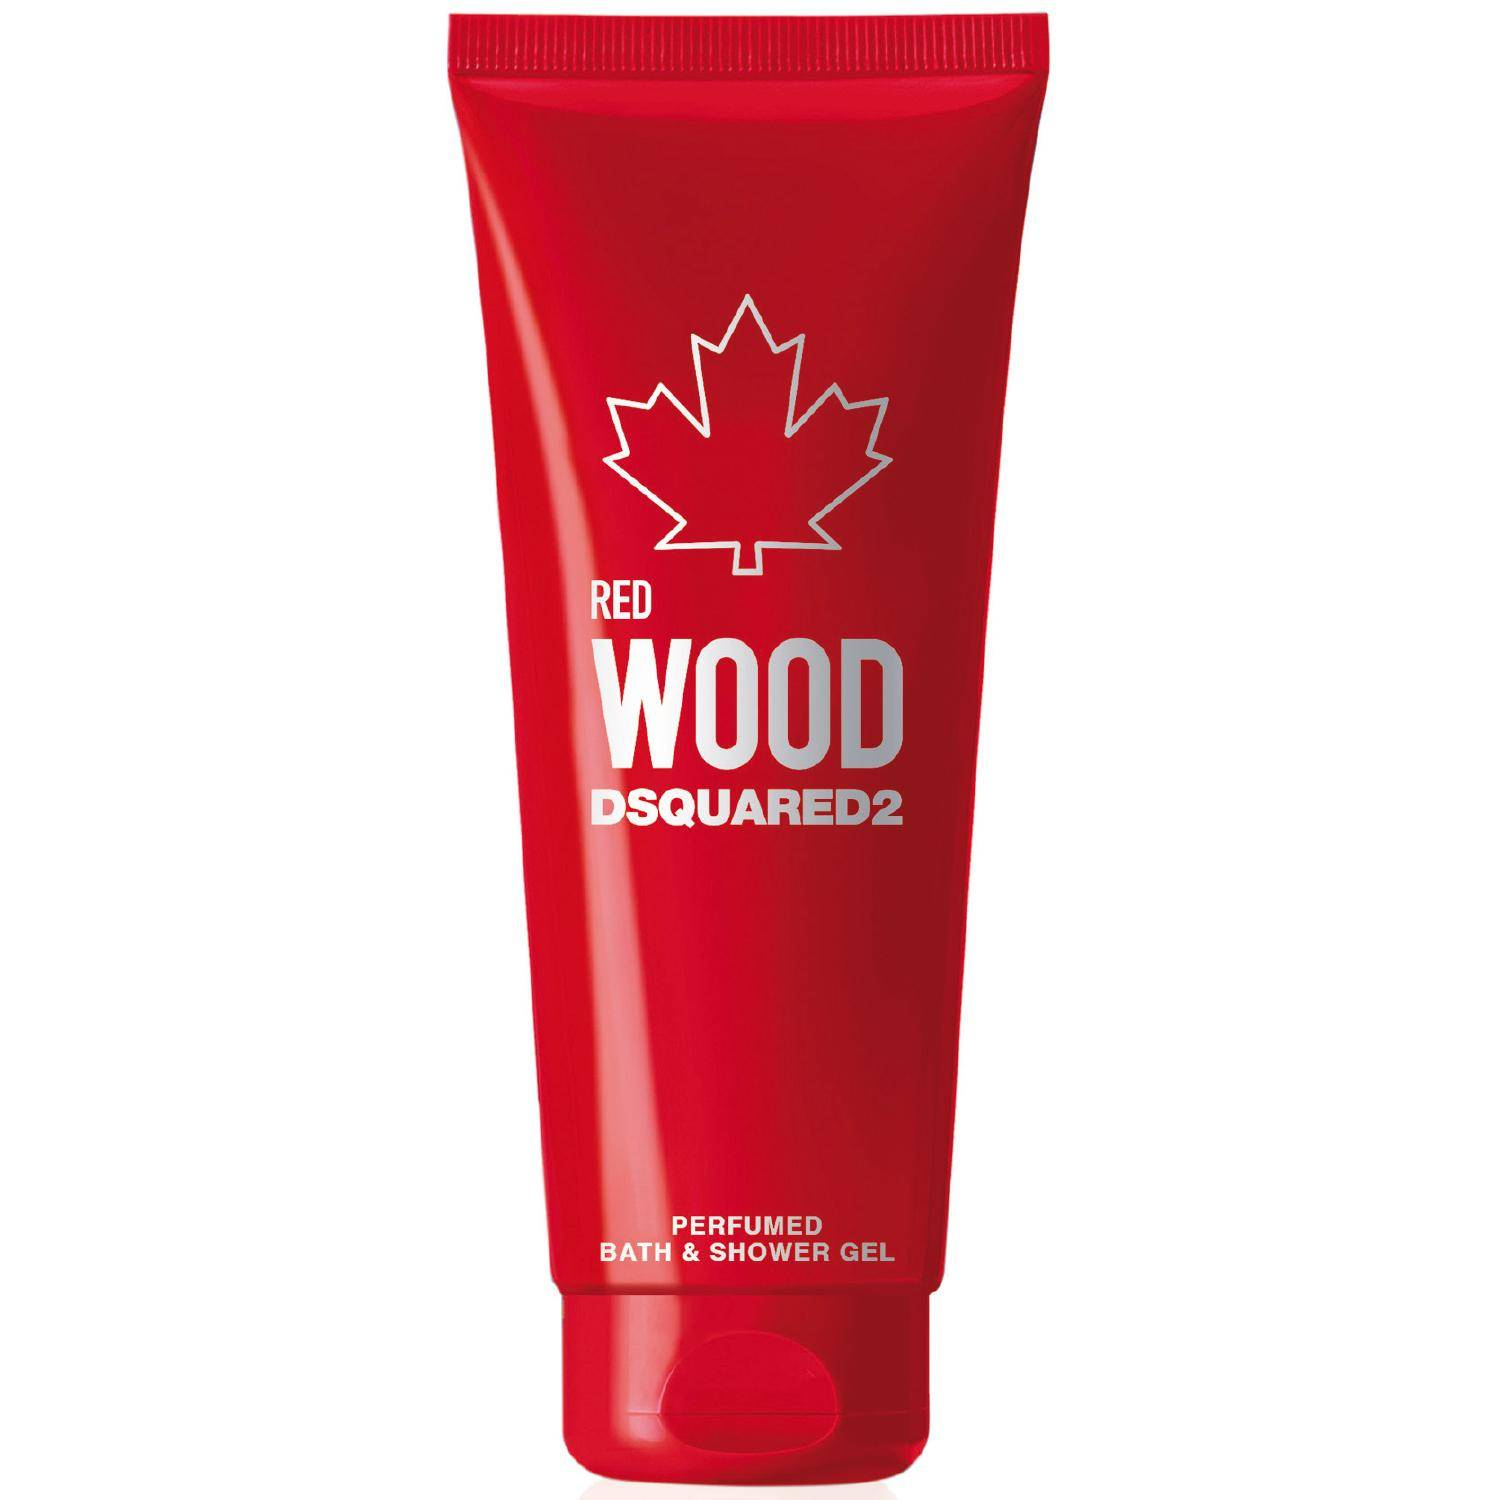 Dsquared 2 Red Wood shower gel 250ml